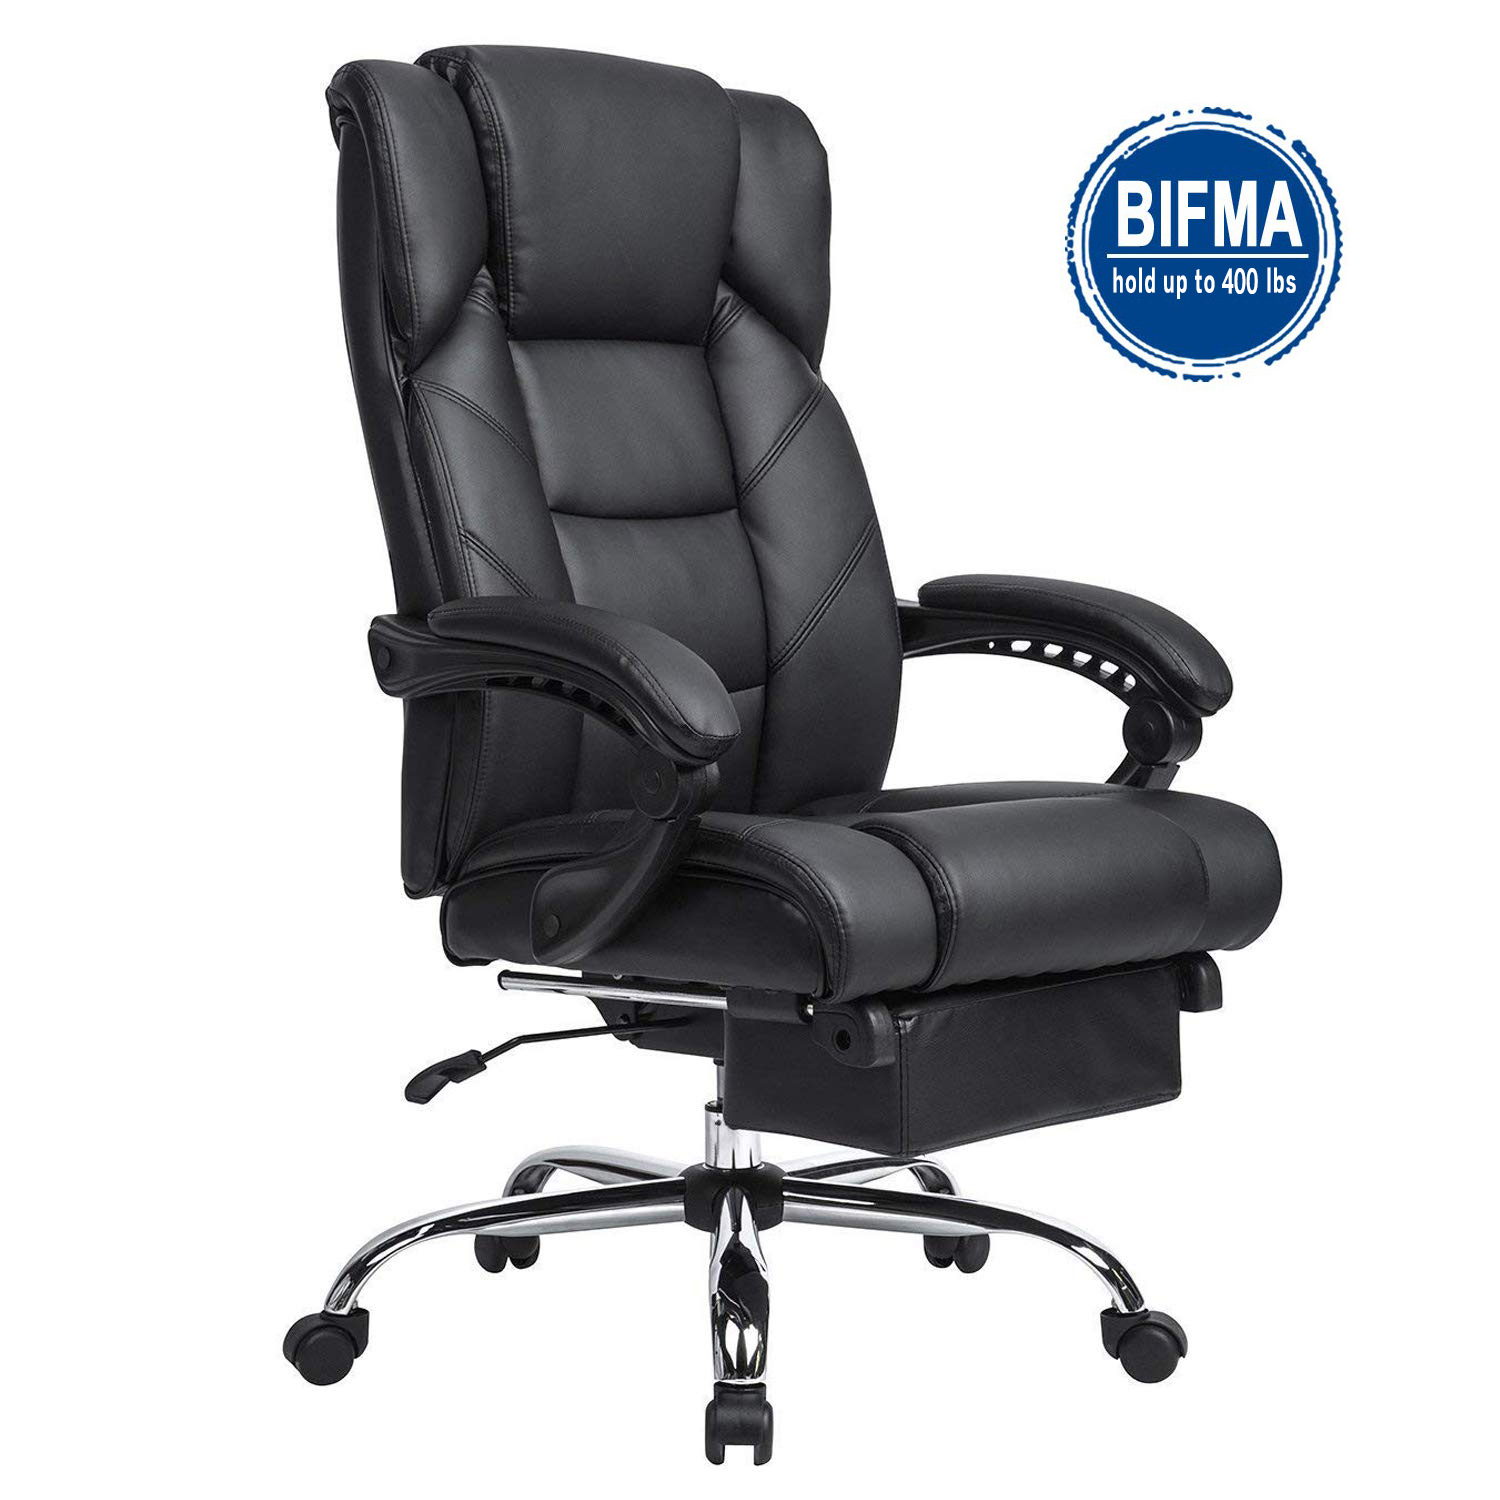 Back Reclining Executive Office Chair